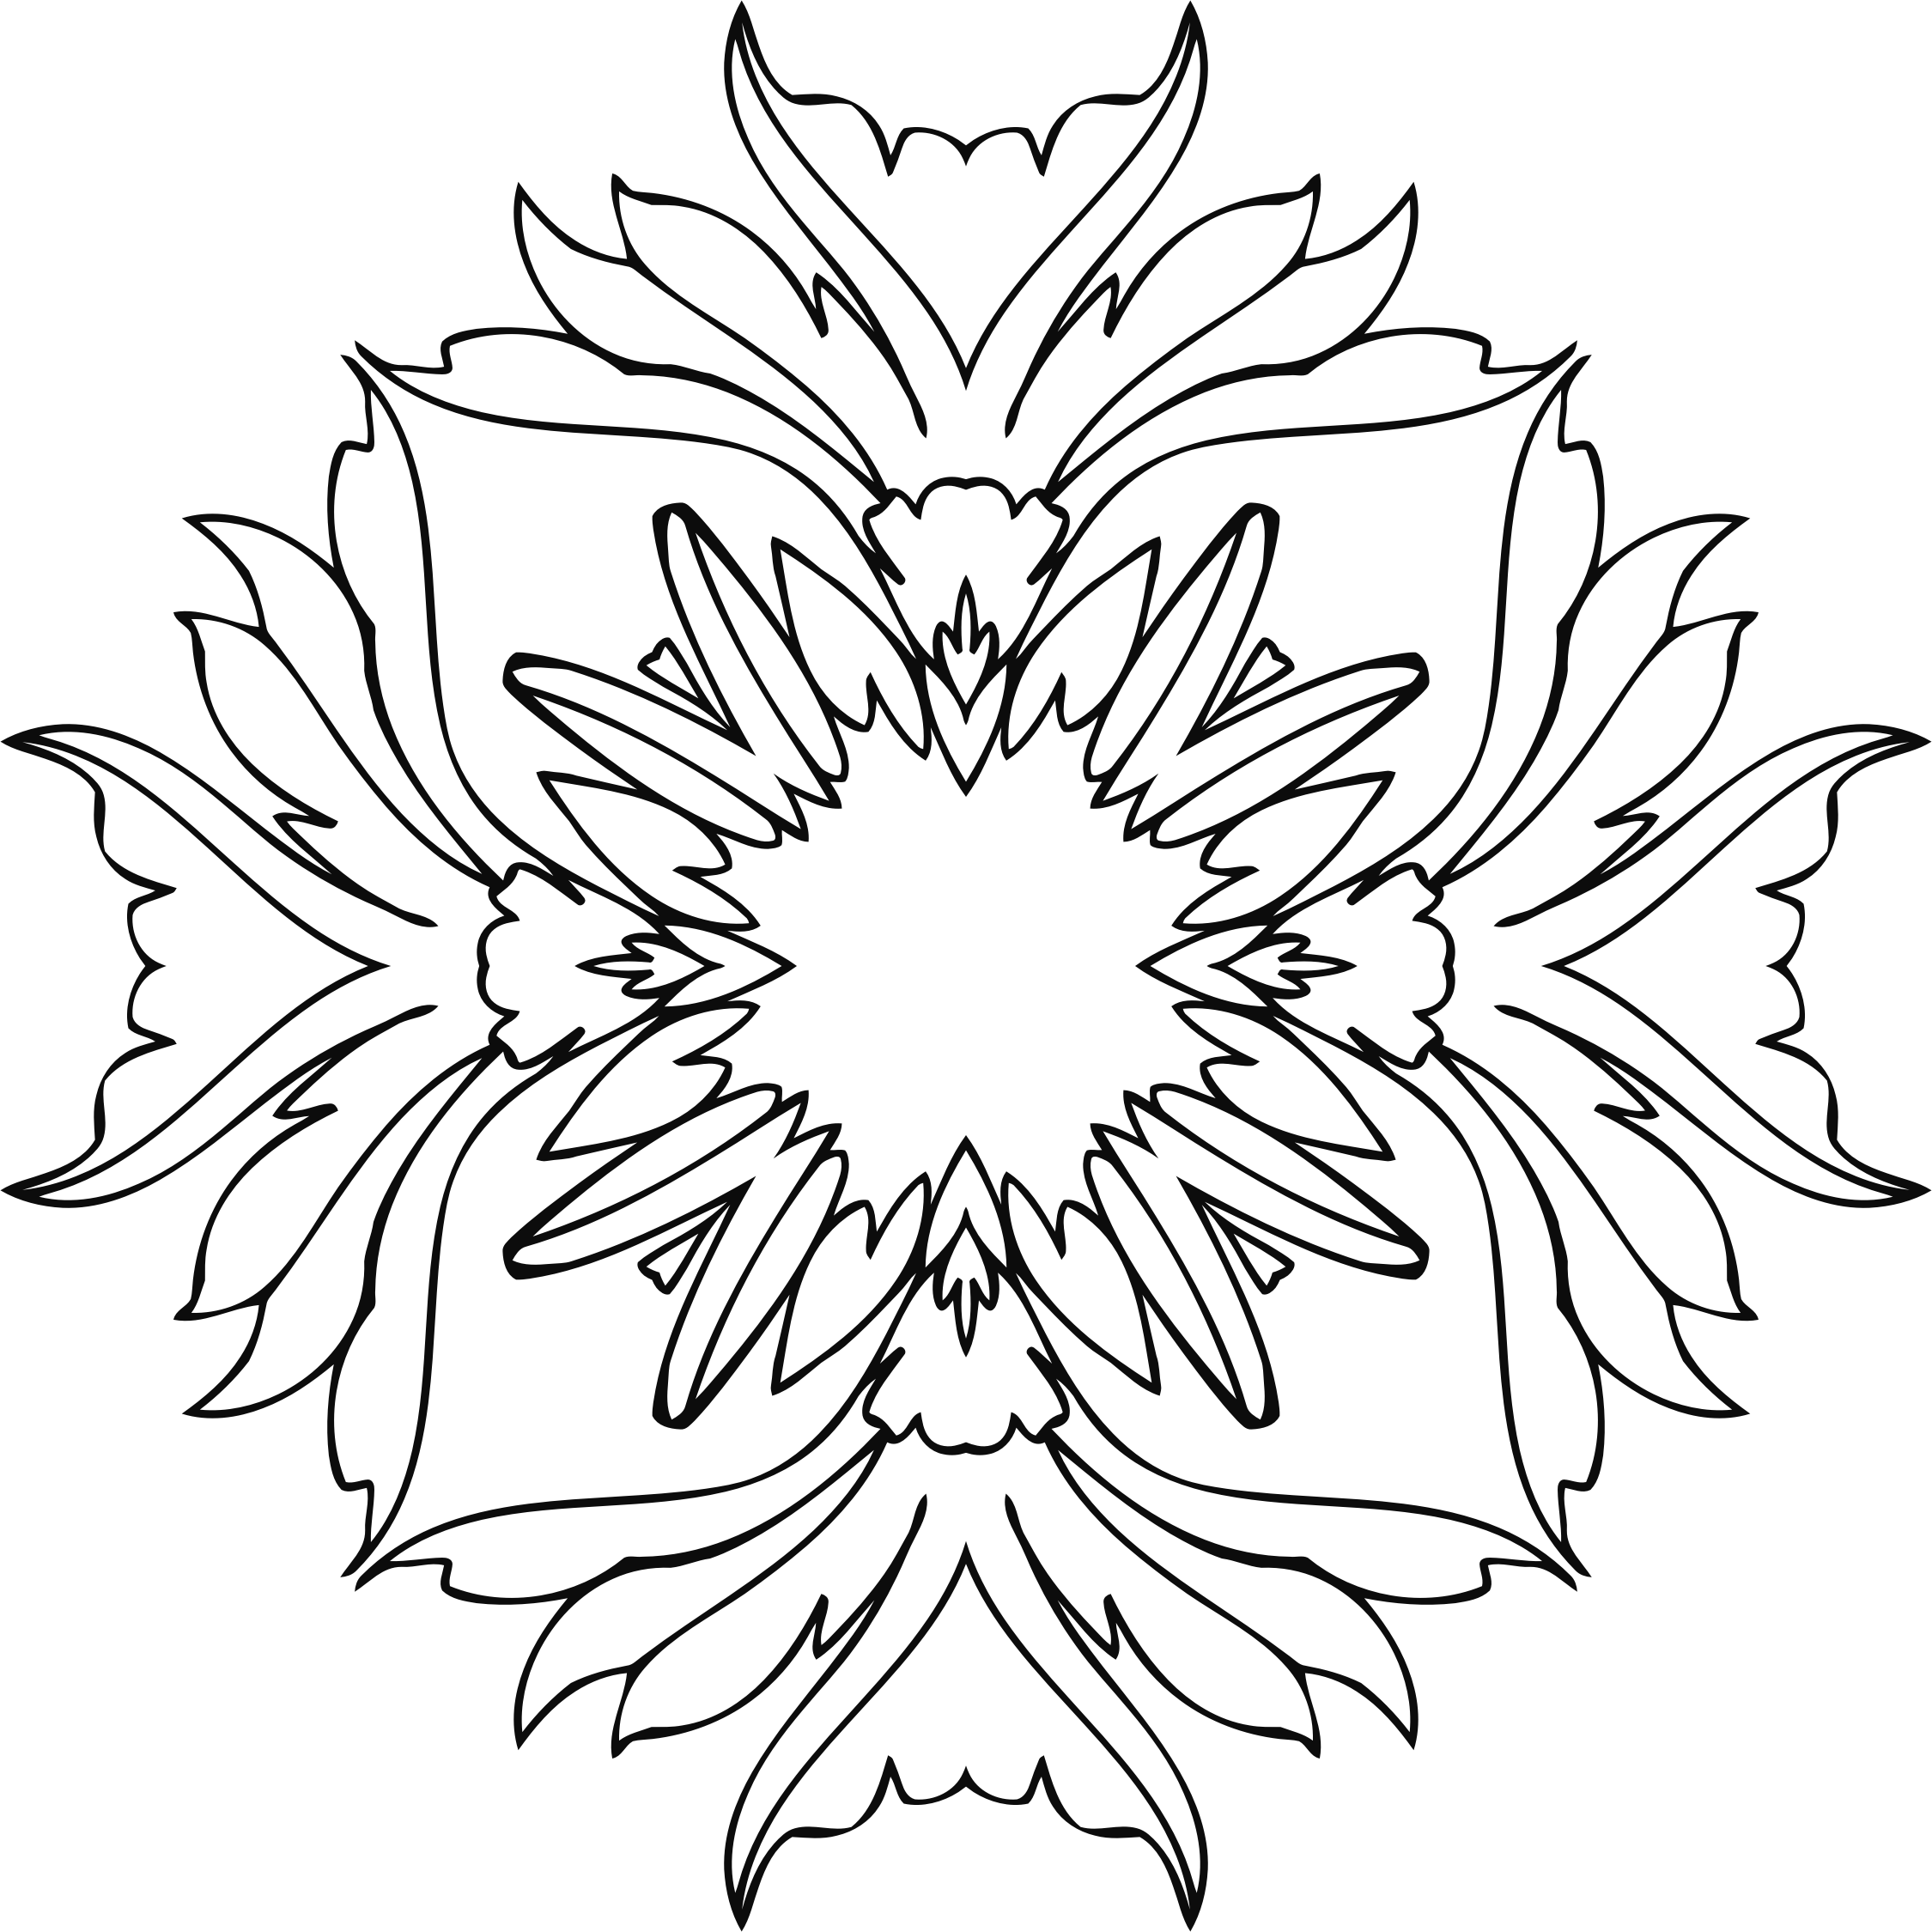 Line Art Flower Png : Clipart flower line art